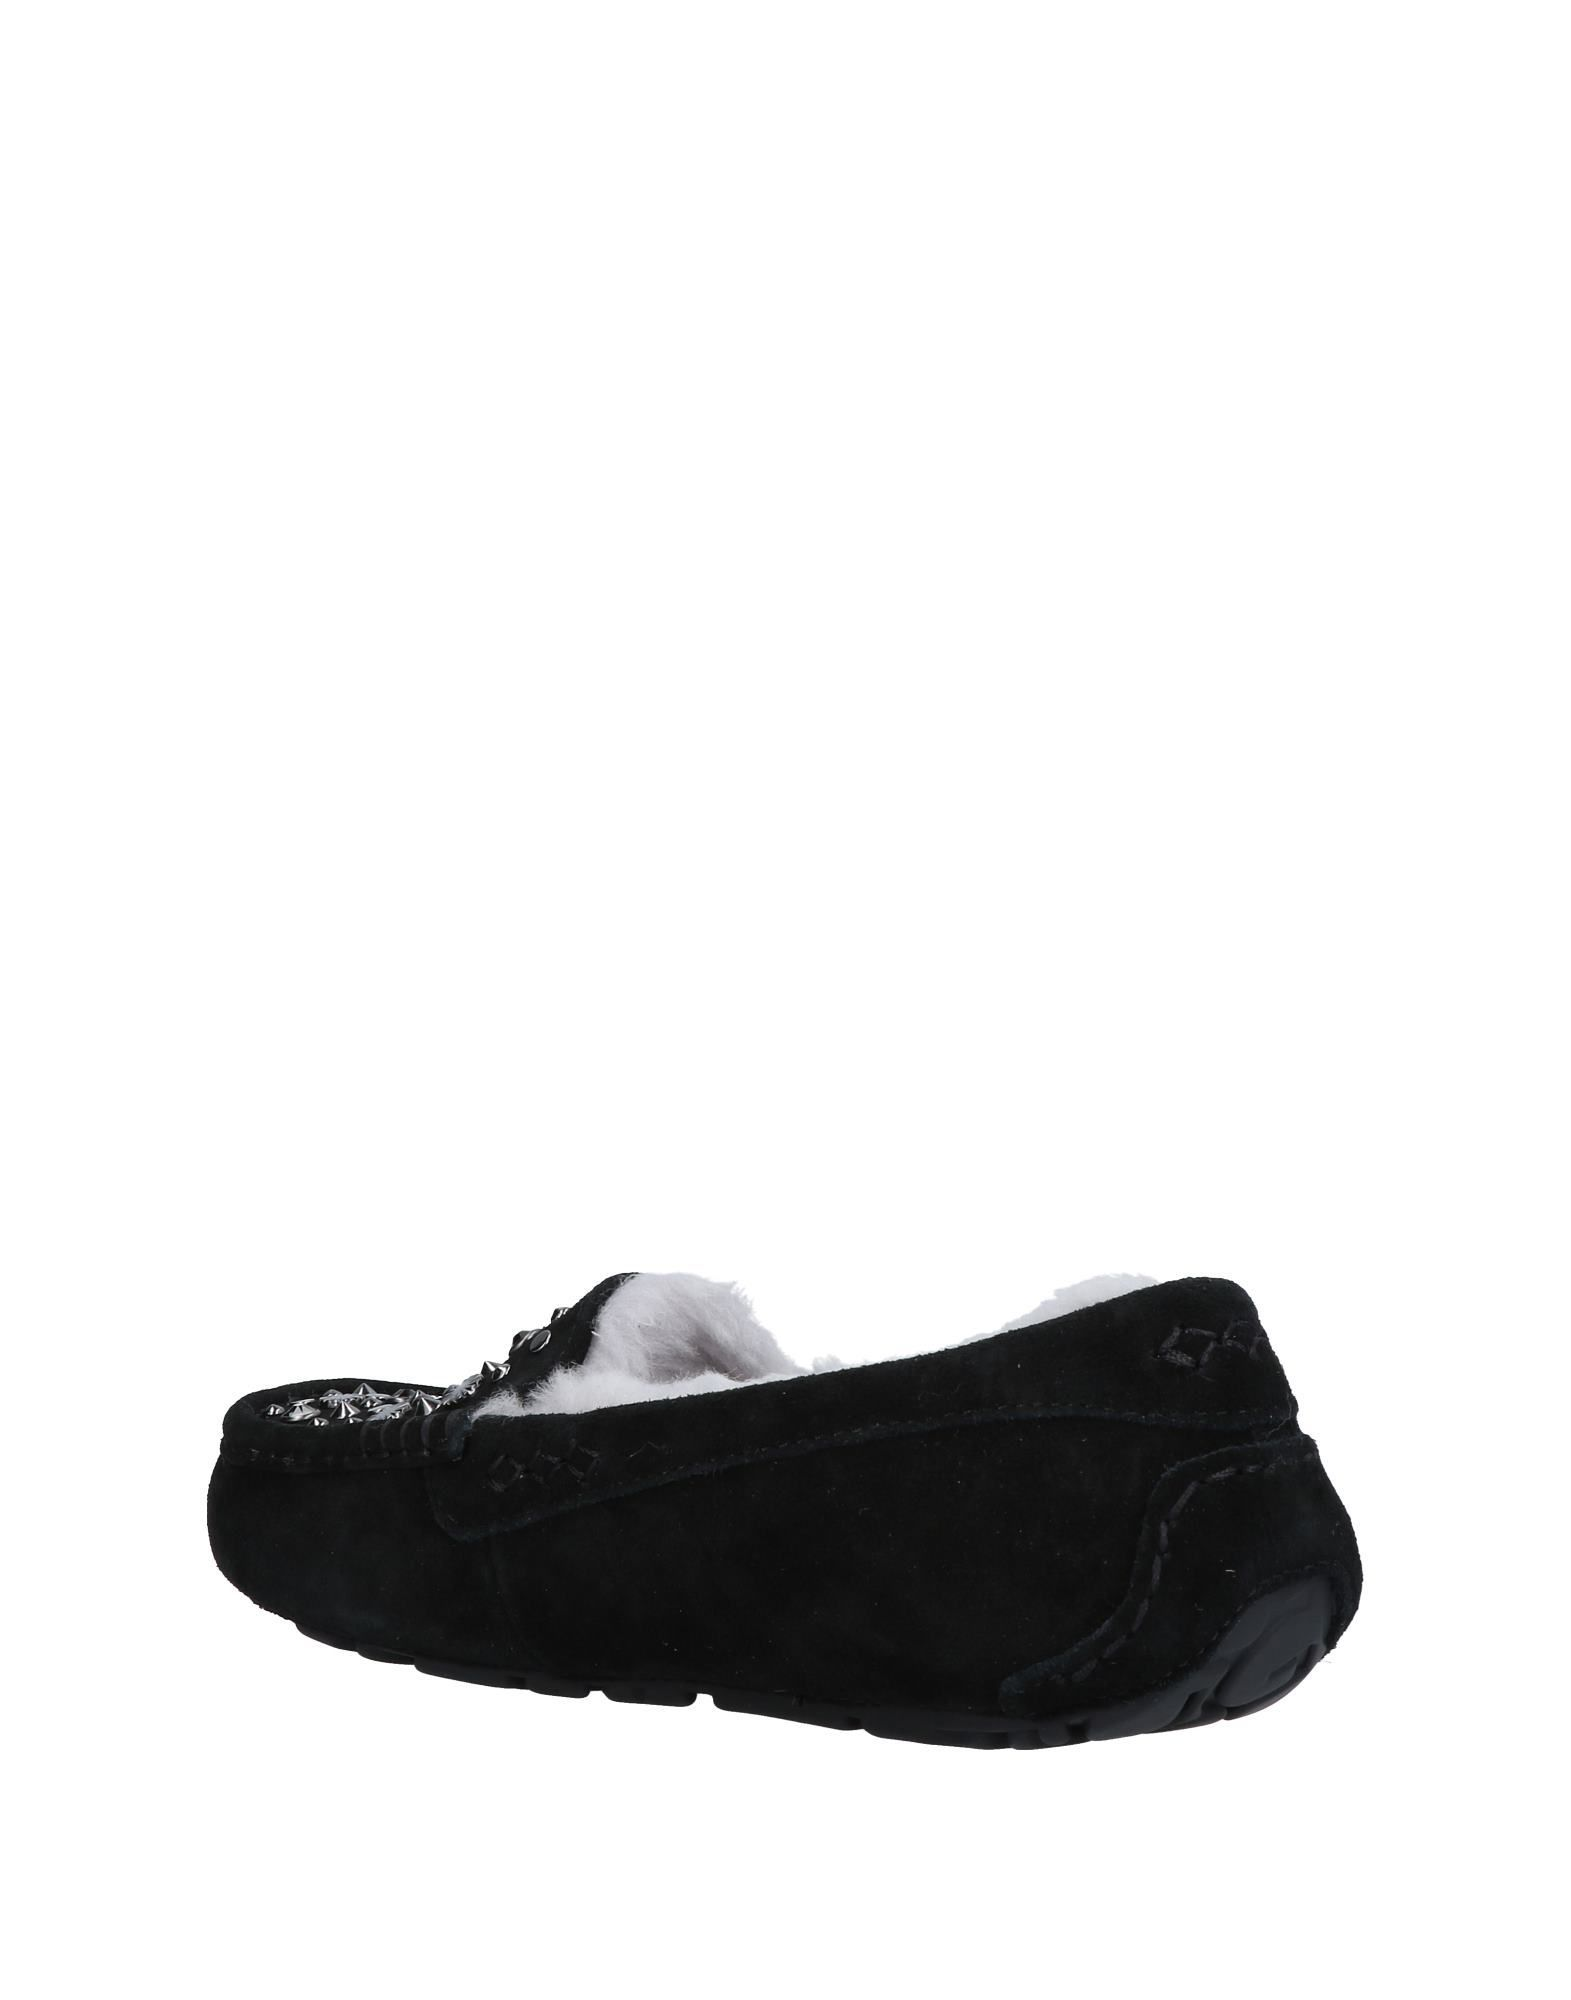 Ugg Australia Black Leather Studded Slippers